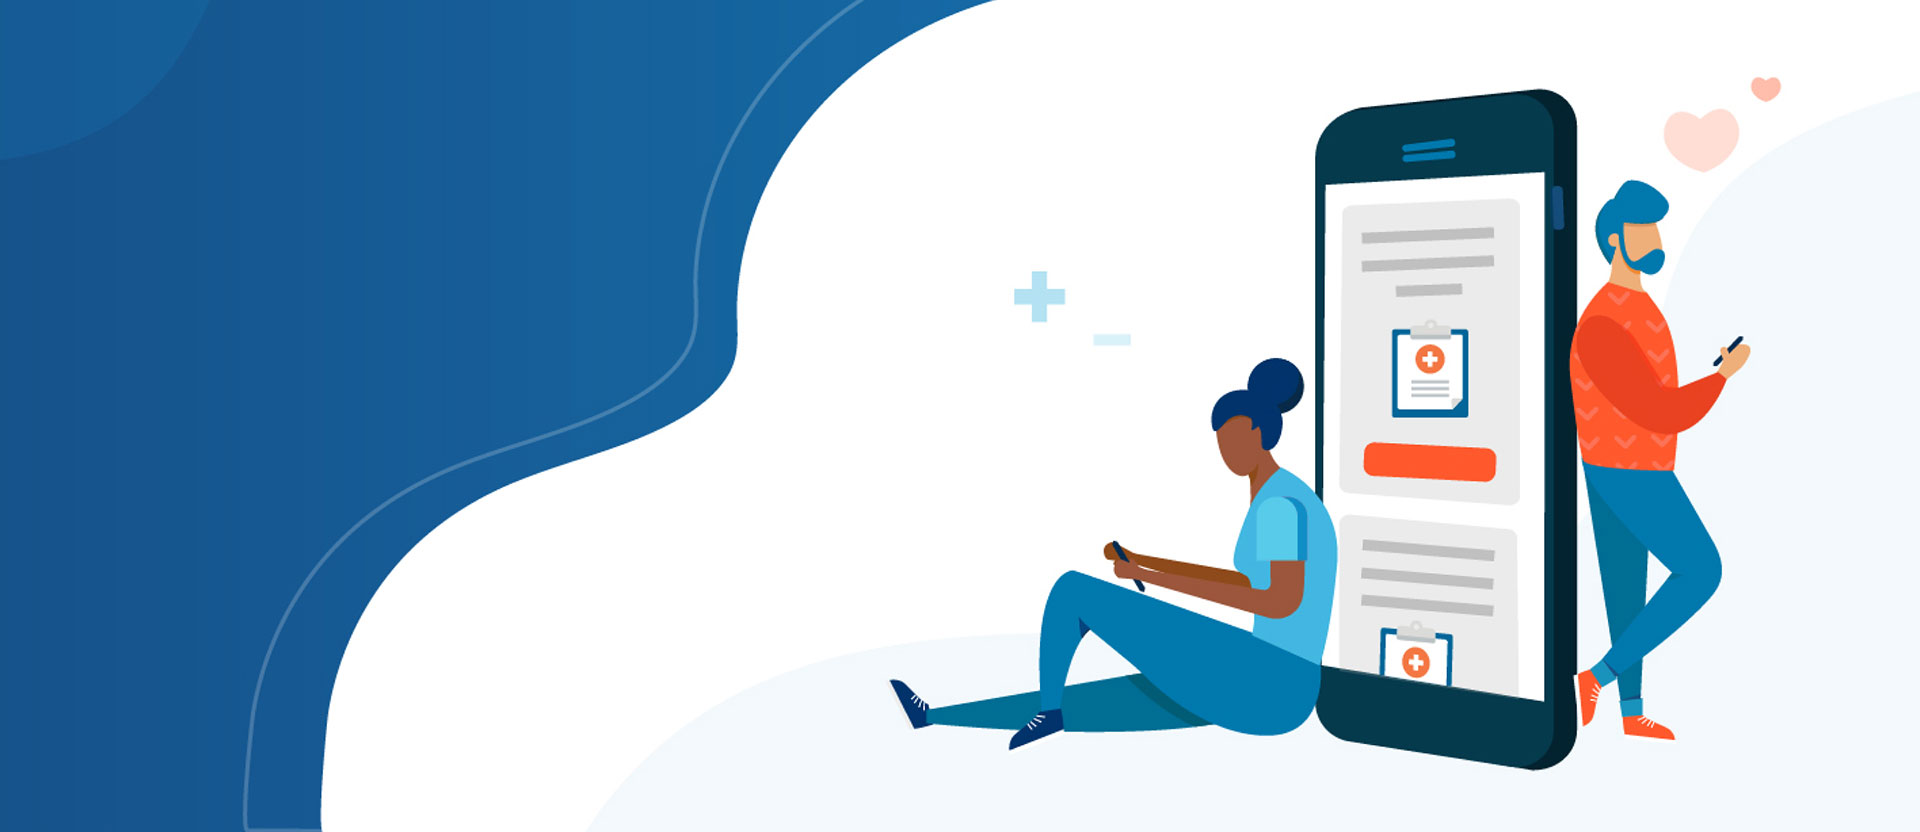 Illustration of two people lending on a giant phone